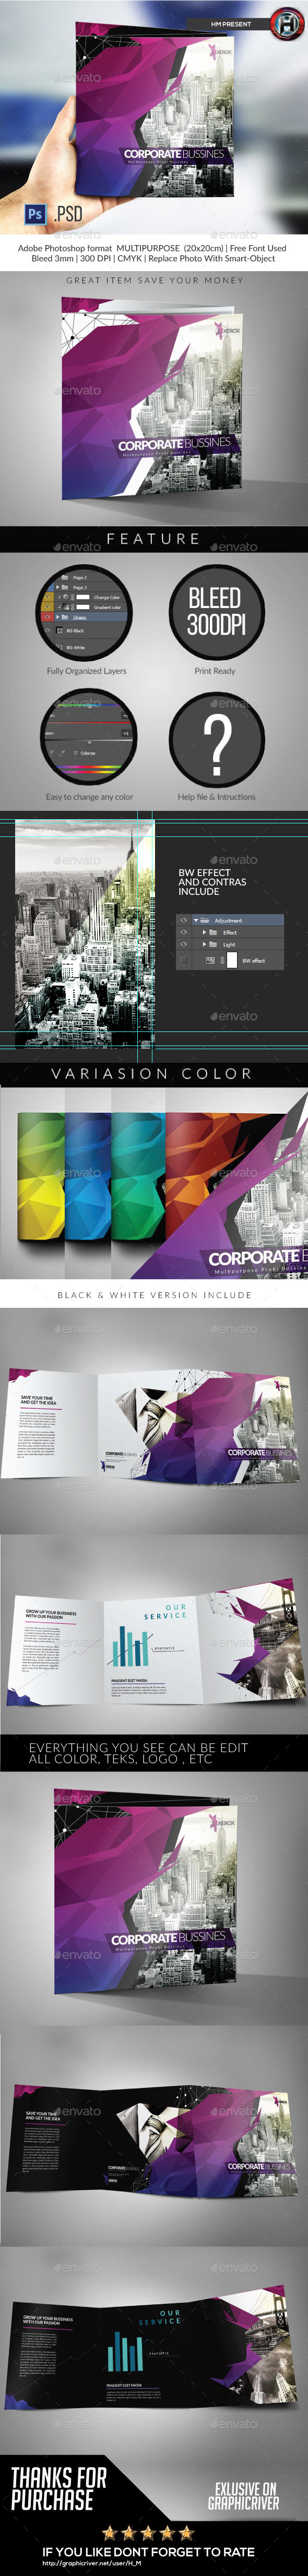 GraphicRiver Square Modern Architecture Trifold 10103283